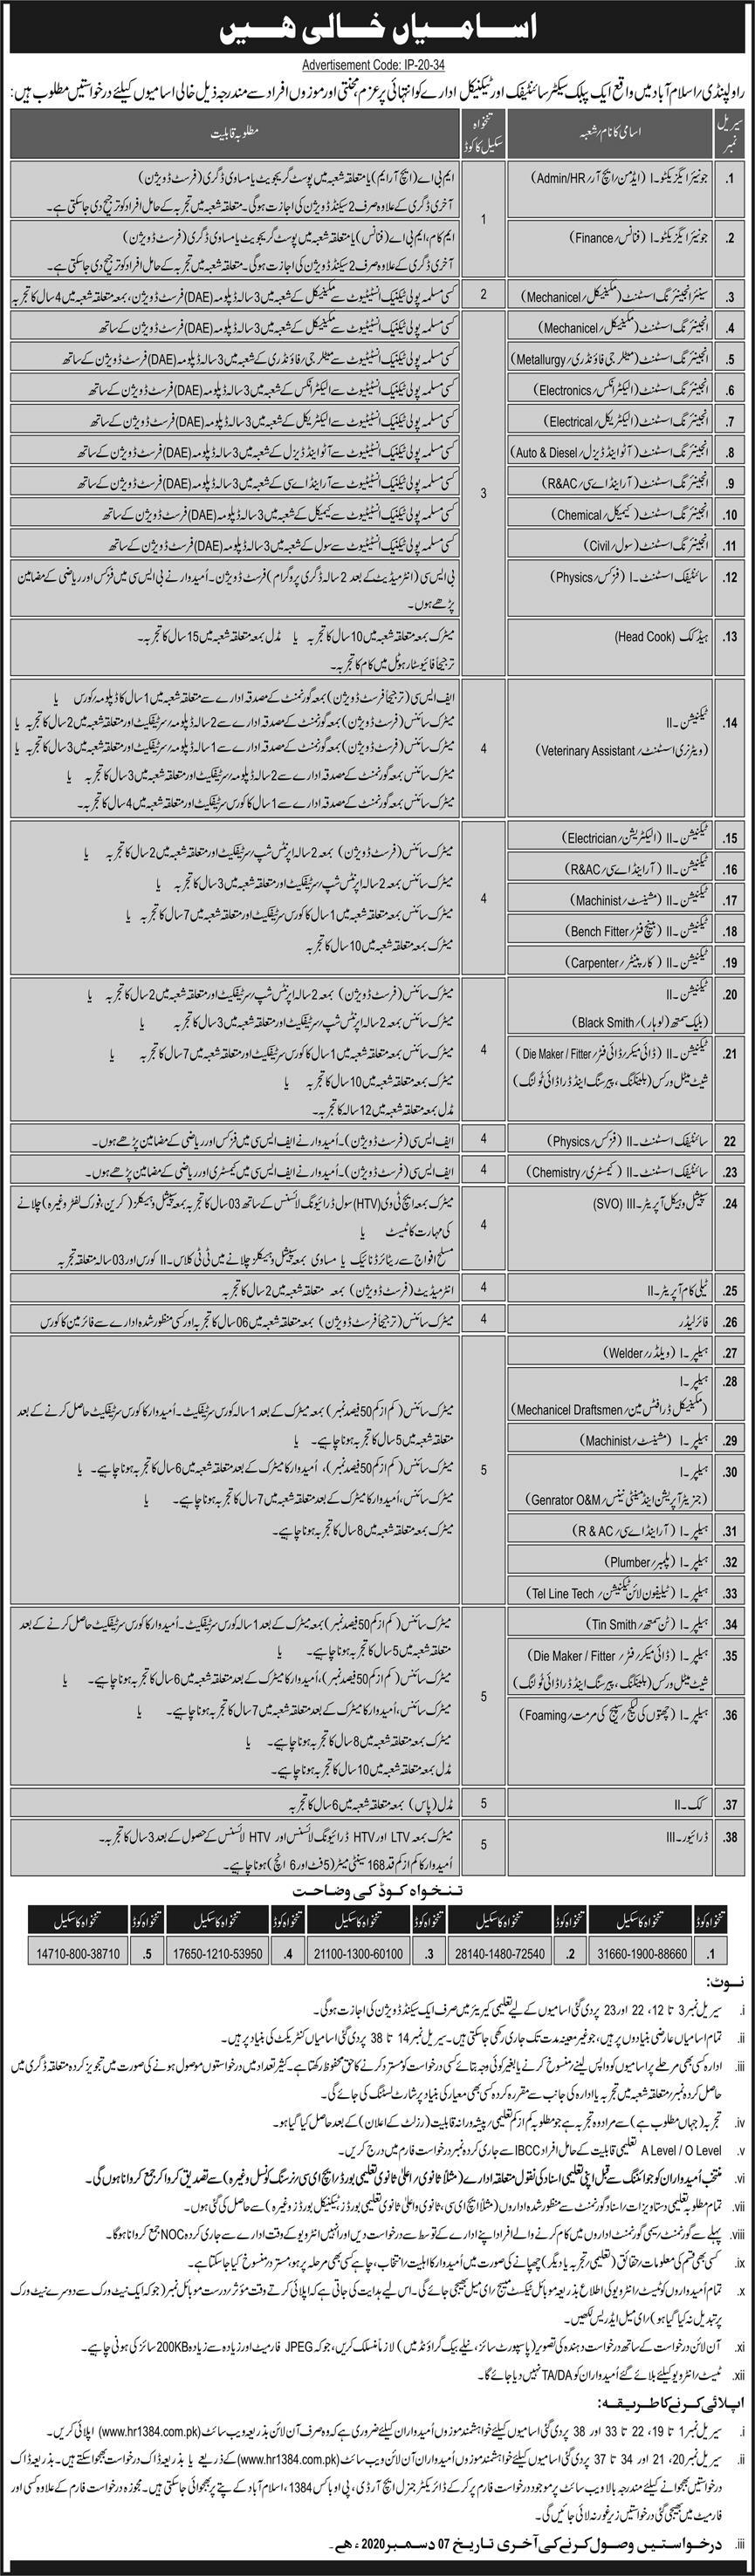 Public Sector Organization PO Box 1384 Latest 2020 Jobs in Pakistan - Online Application Form - www.hr1384.com.pk